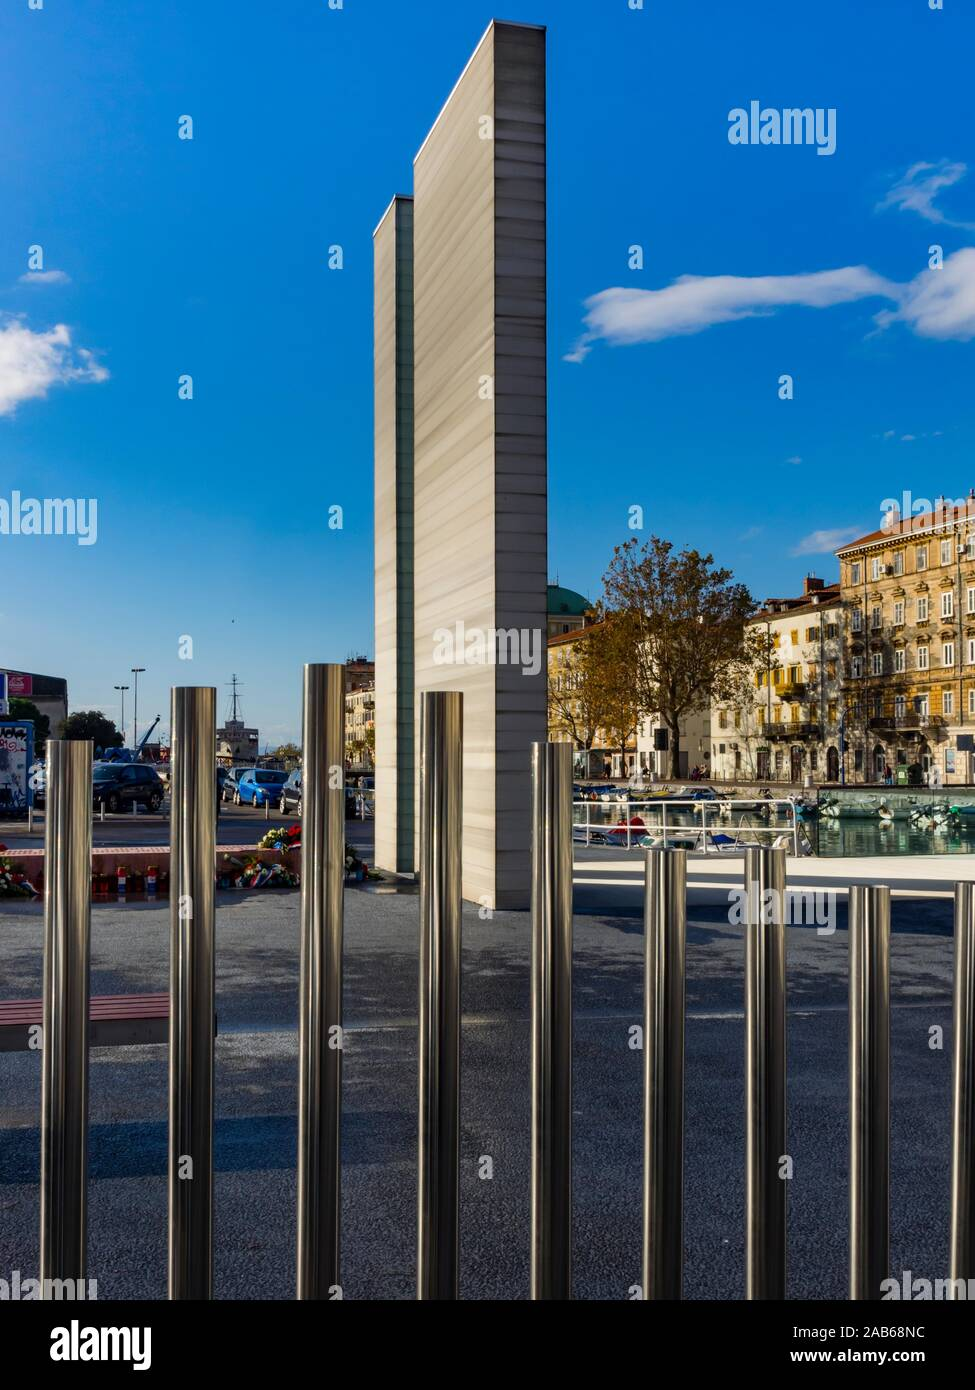 Parking lot place Delta music tubes and war monument  in town Rijeka in Croatia Stock Photo